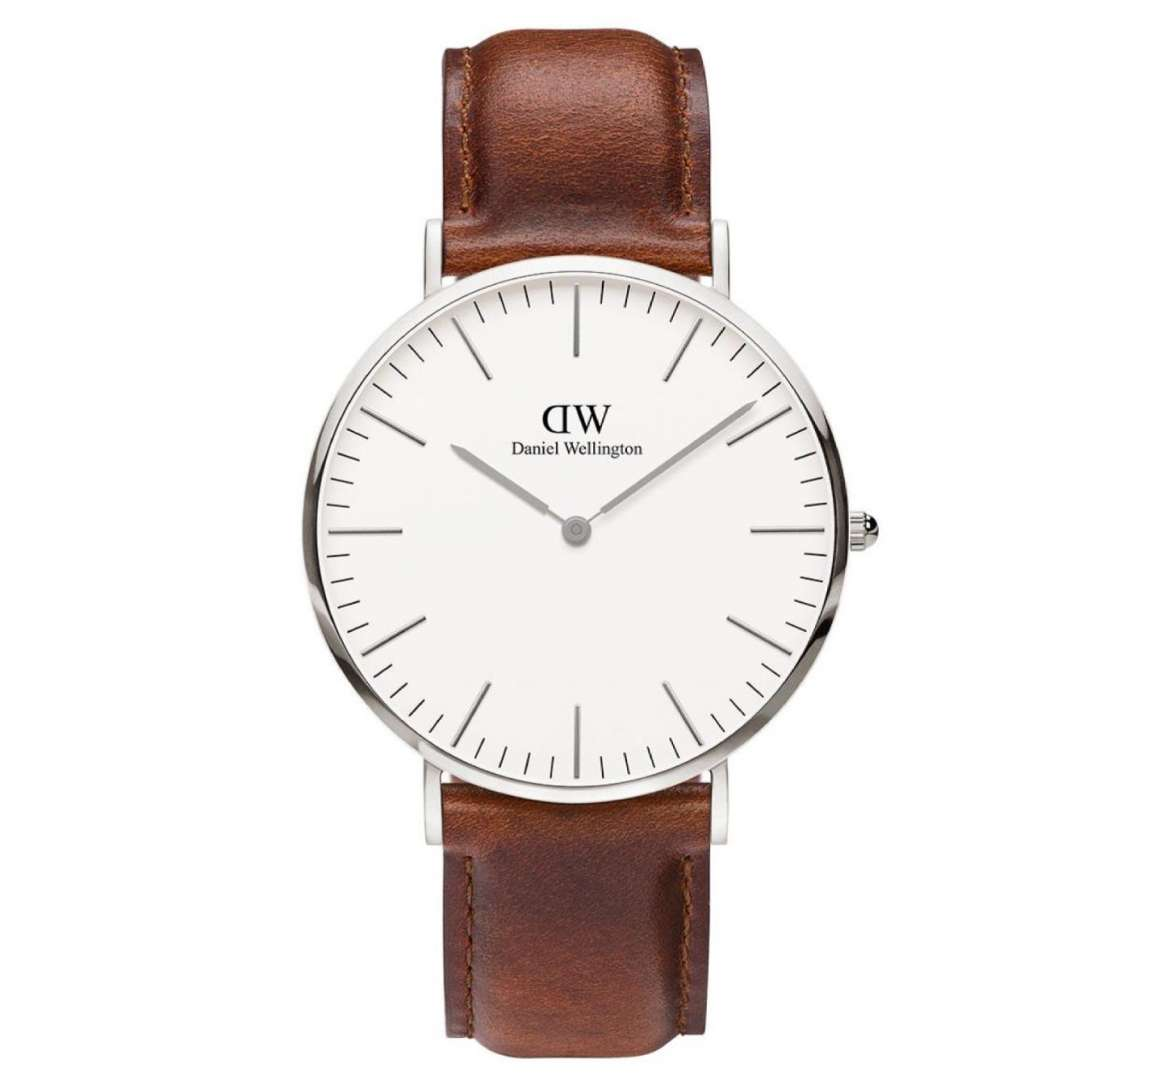 שעון יד אנלוגי daniel wellington 0207dw דניאל וולינגטון